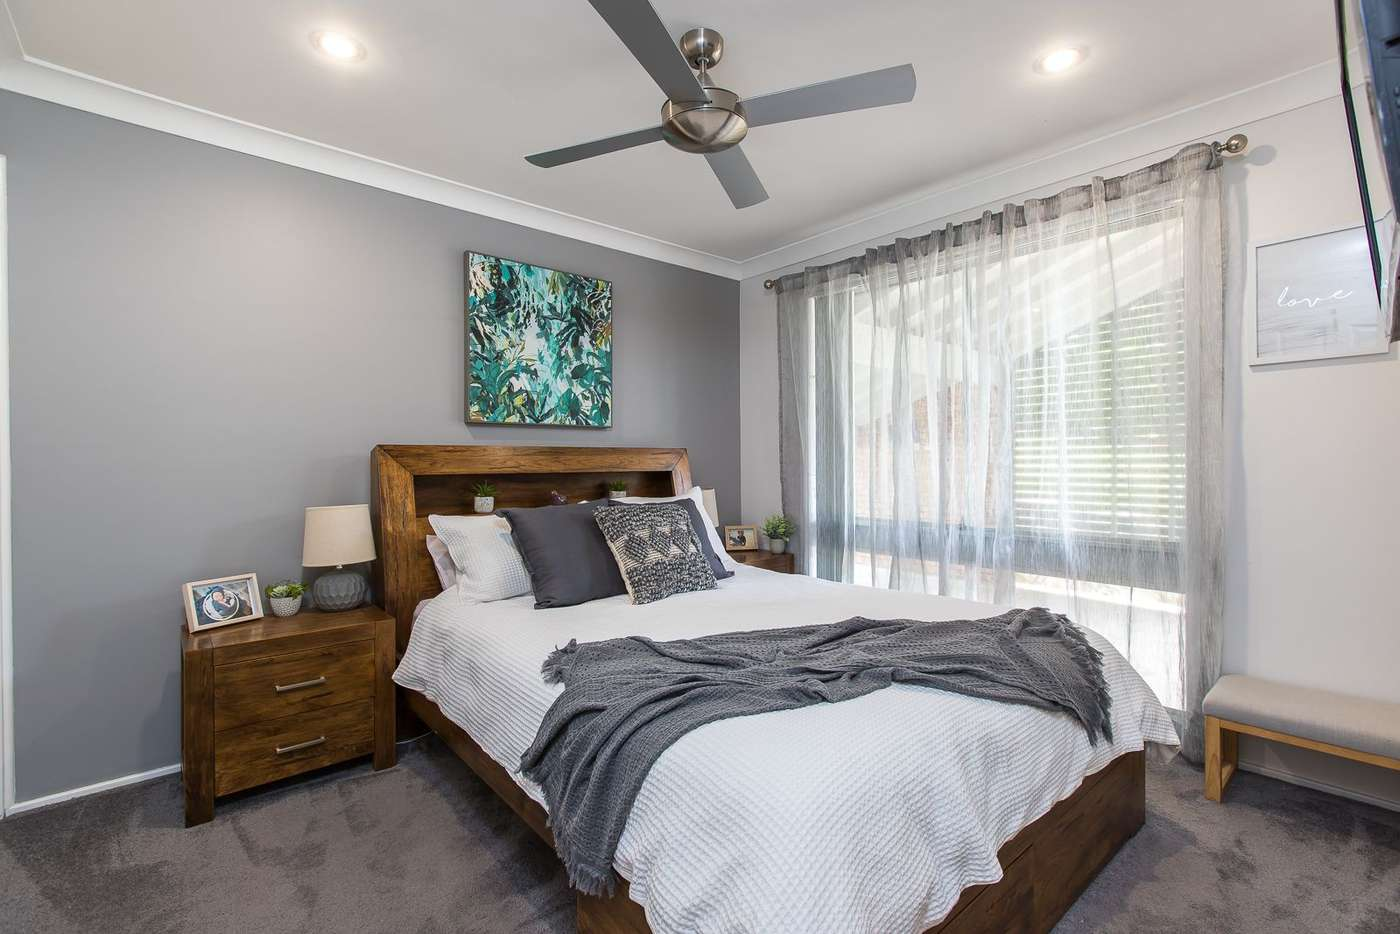 Fifth view of Homely house listing, 17 Goola Avenue, Kahibah NSW 2290